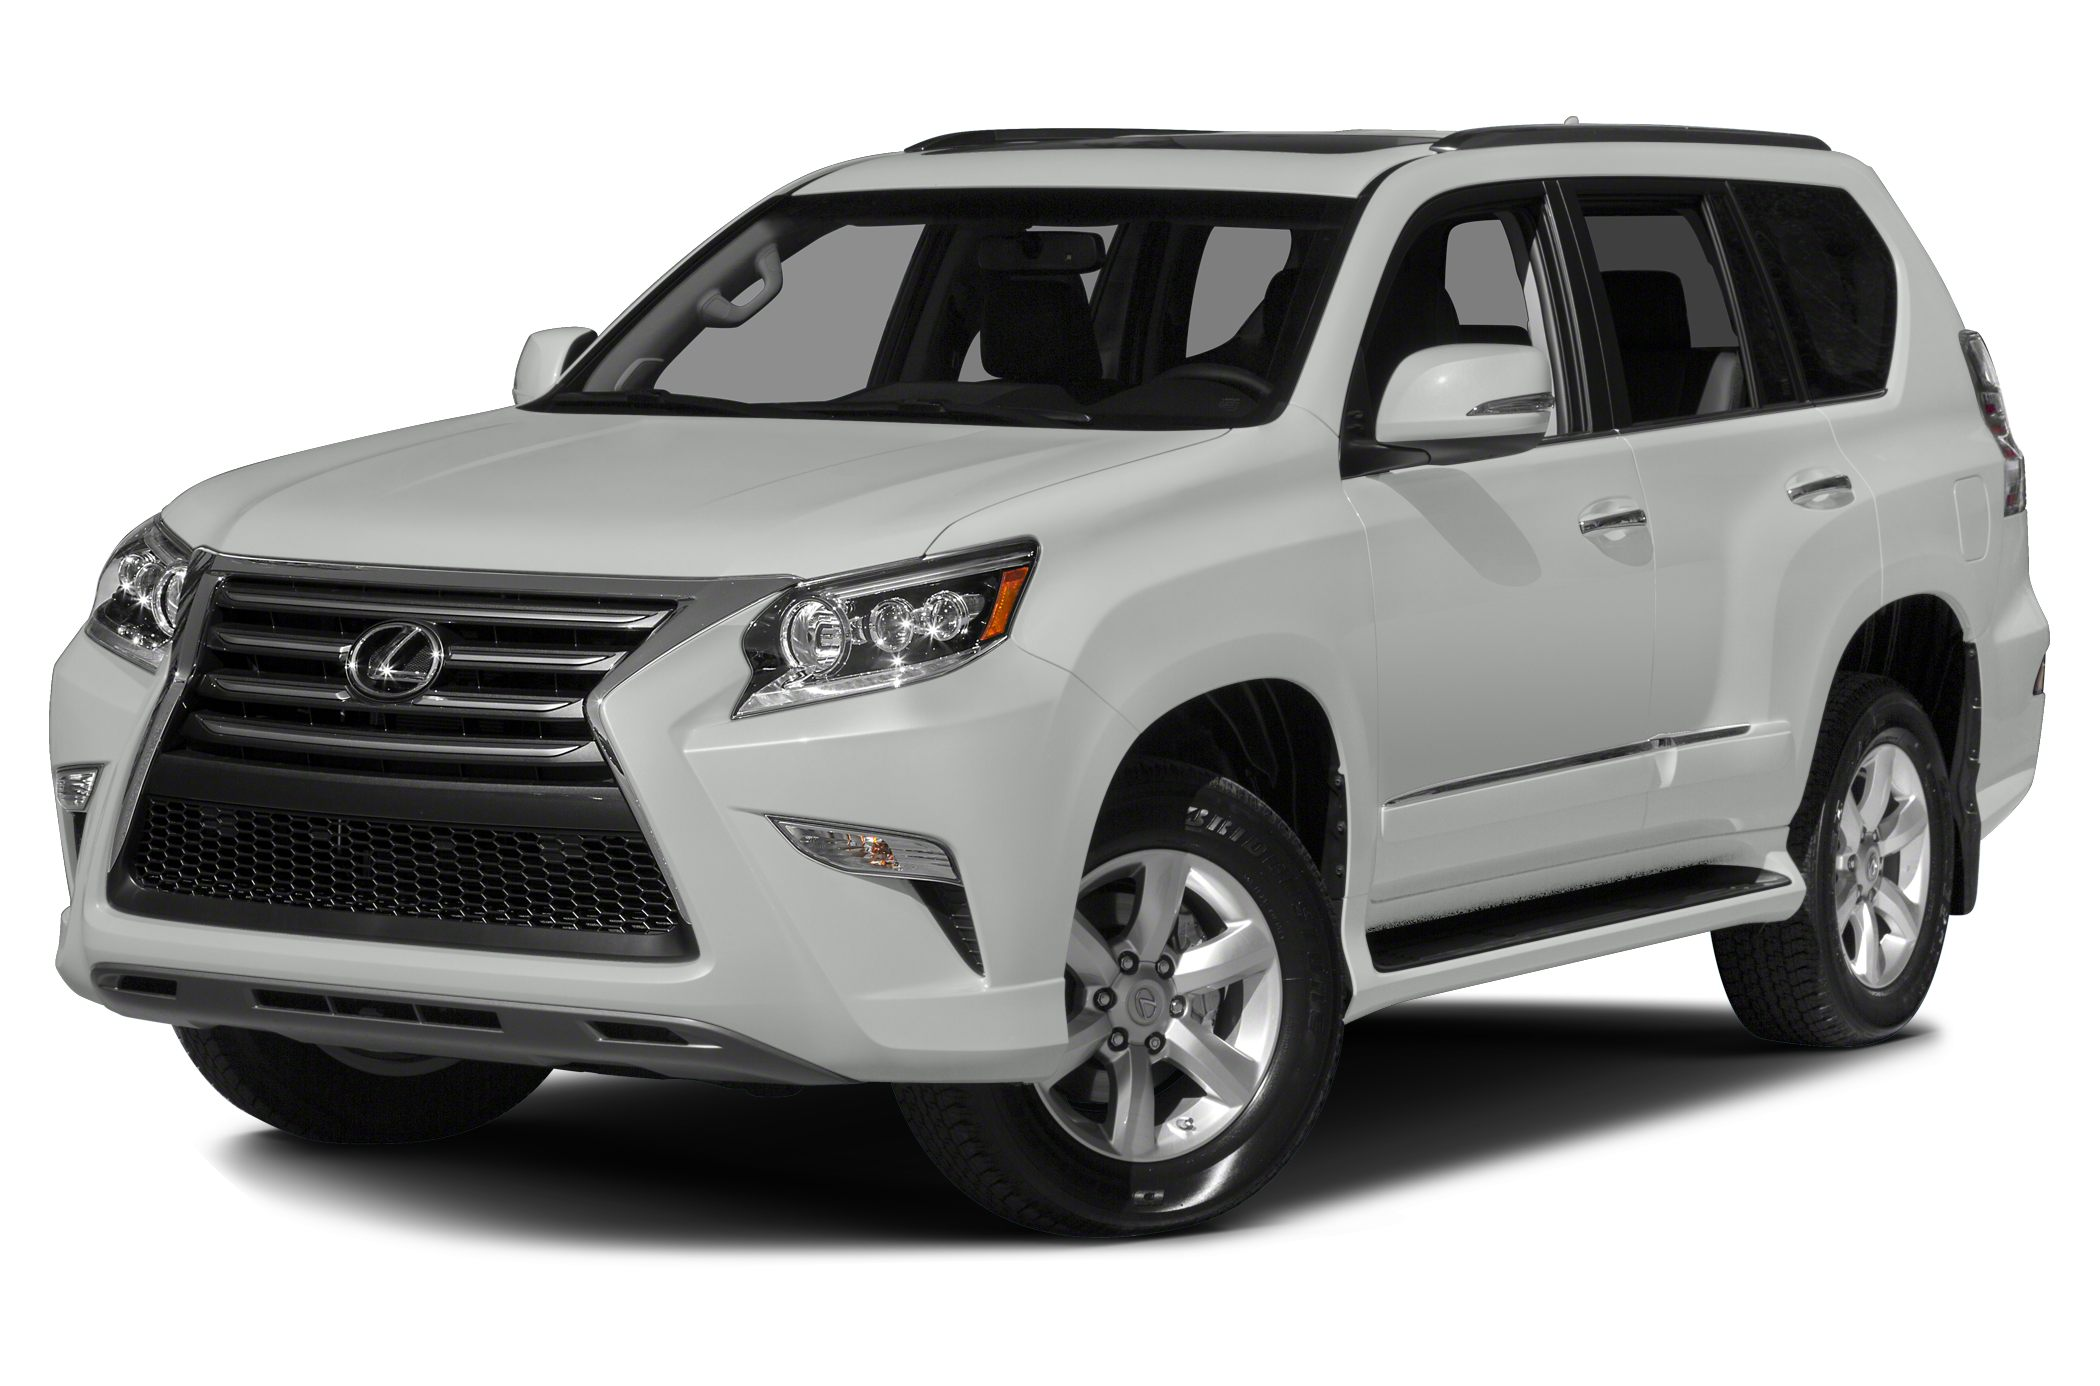 2014 Lexus GX 460 Luxury SUV for sale in Escondido for $67,935 with 8 miles